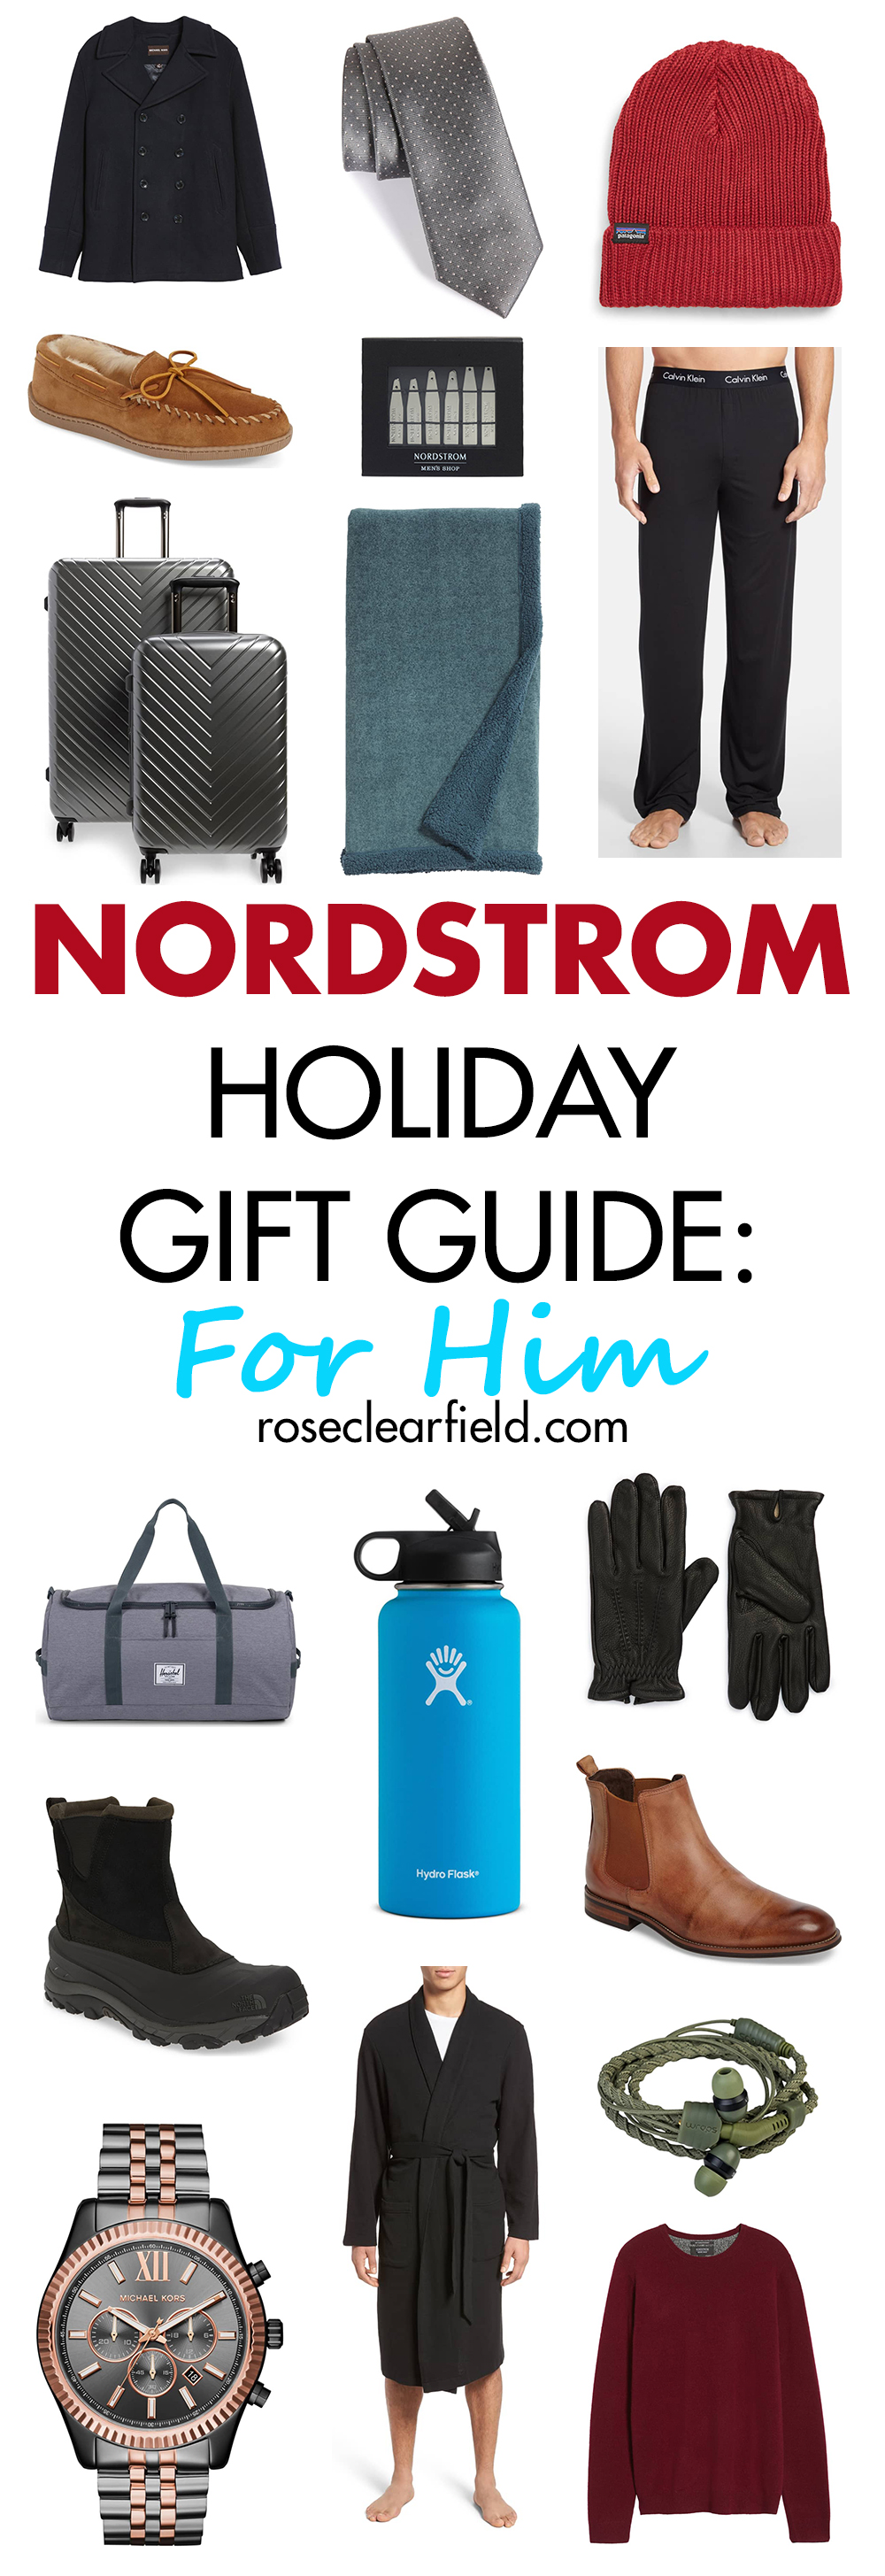 Nordstrom Holiday Gift Guide: For Him | https://www.roseclearfield.com